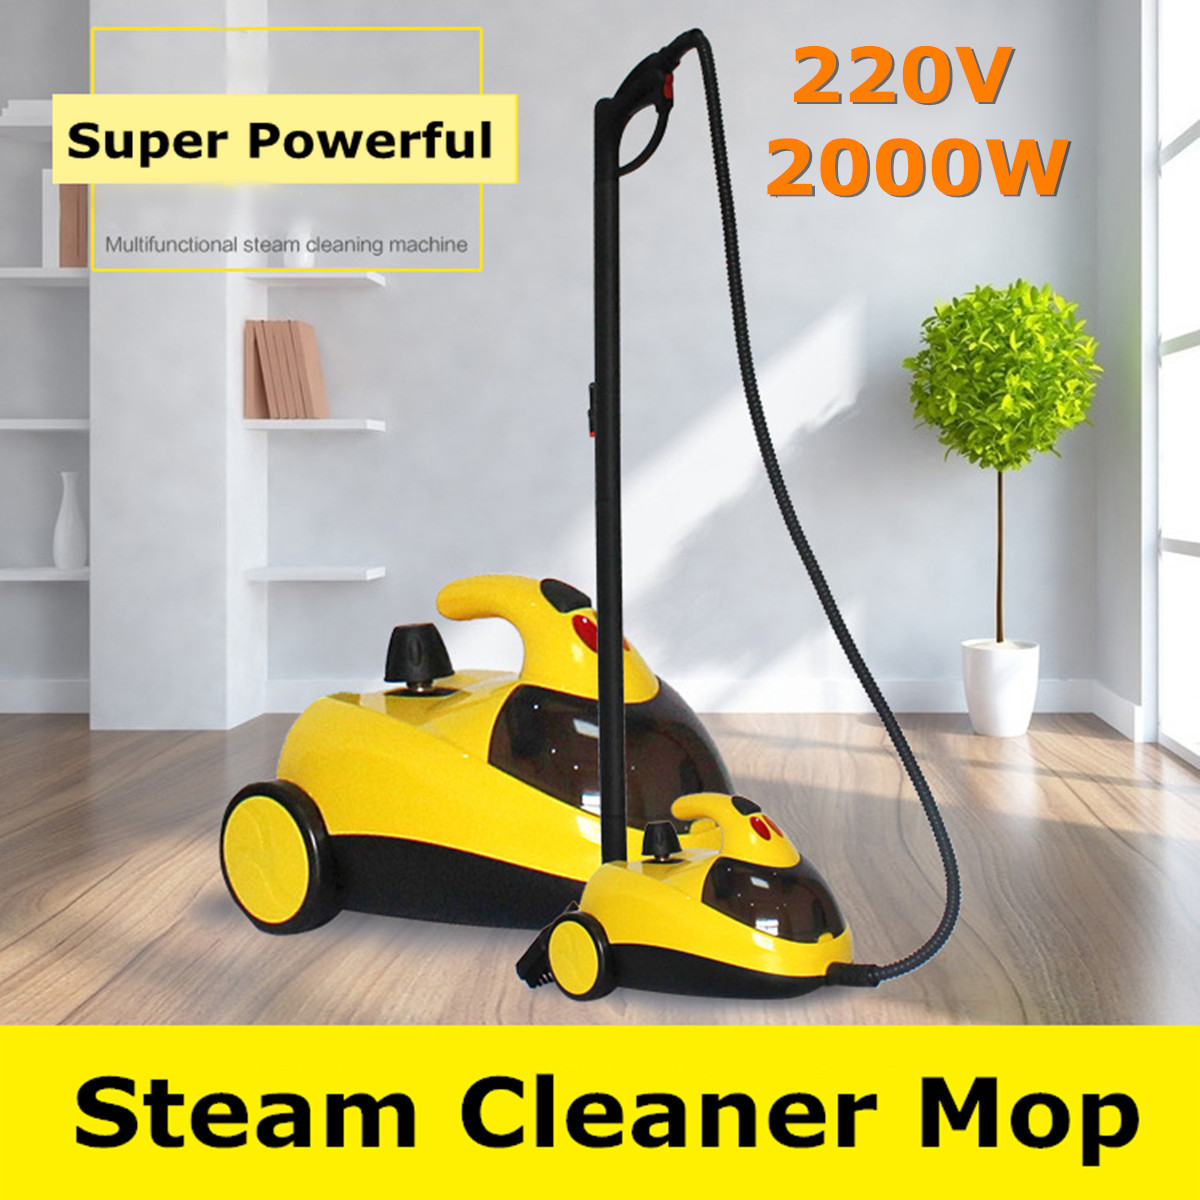 Floor Carpet Cleaner 13in1 AU220V 1.5L4.0 1800W Bar High Pressure Steam Washer Cleaning Machine 360 Wheel for Clean Bathroom Car